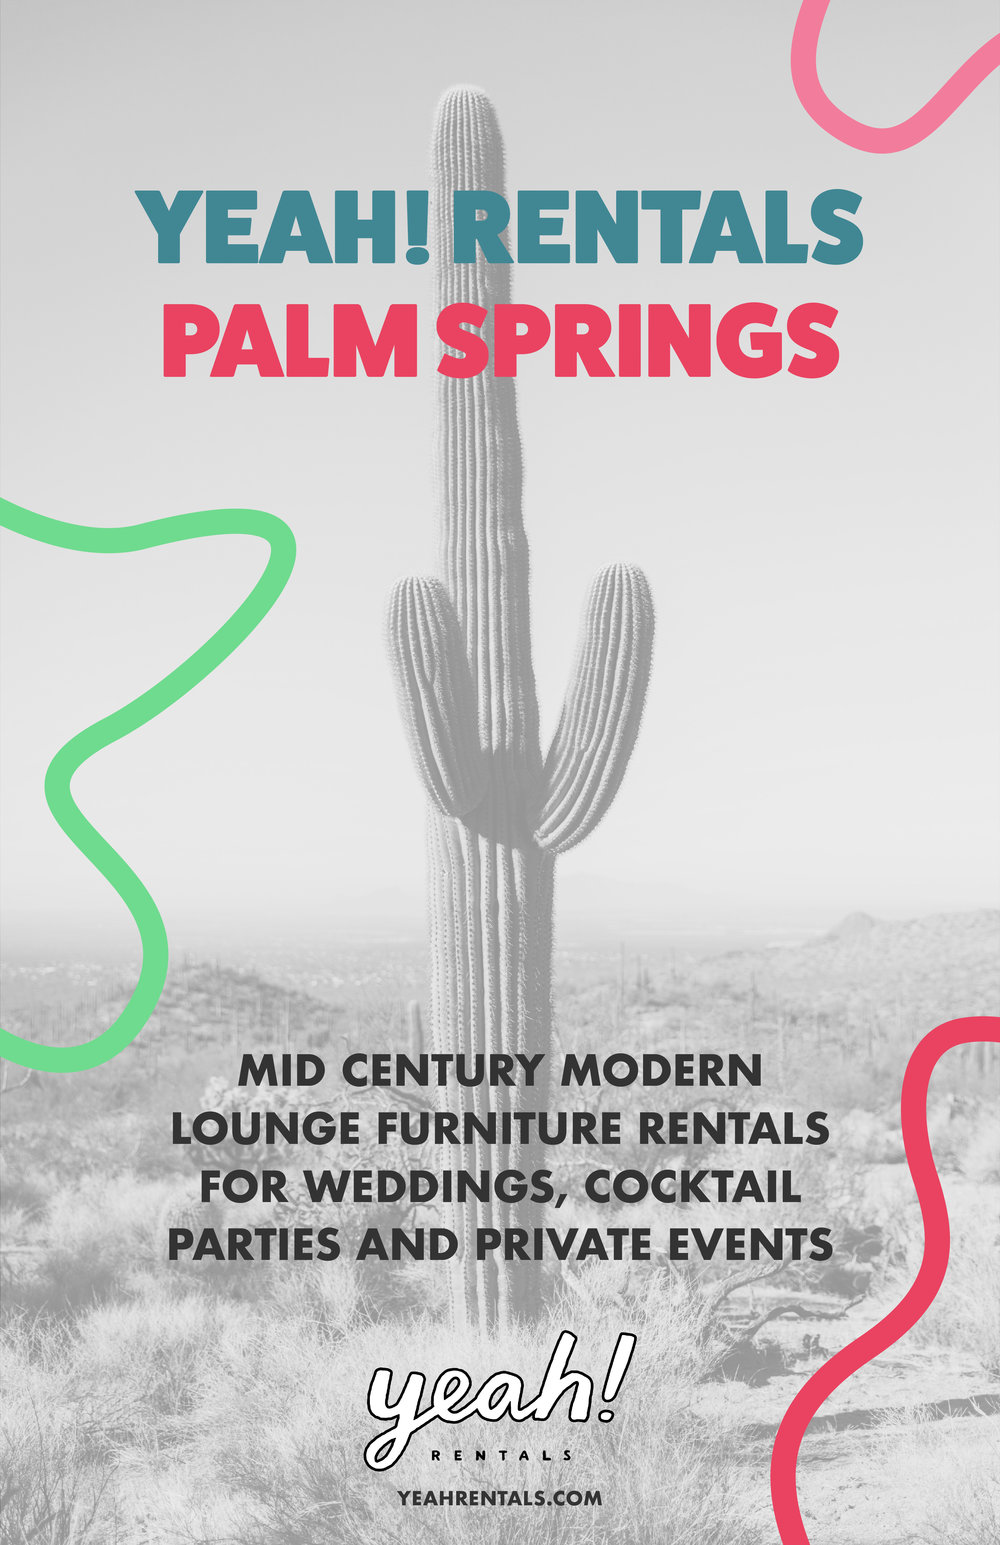 180314_palm springs_final artwork-03.jpg